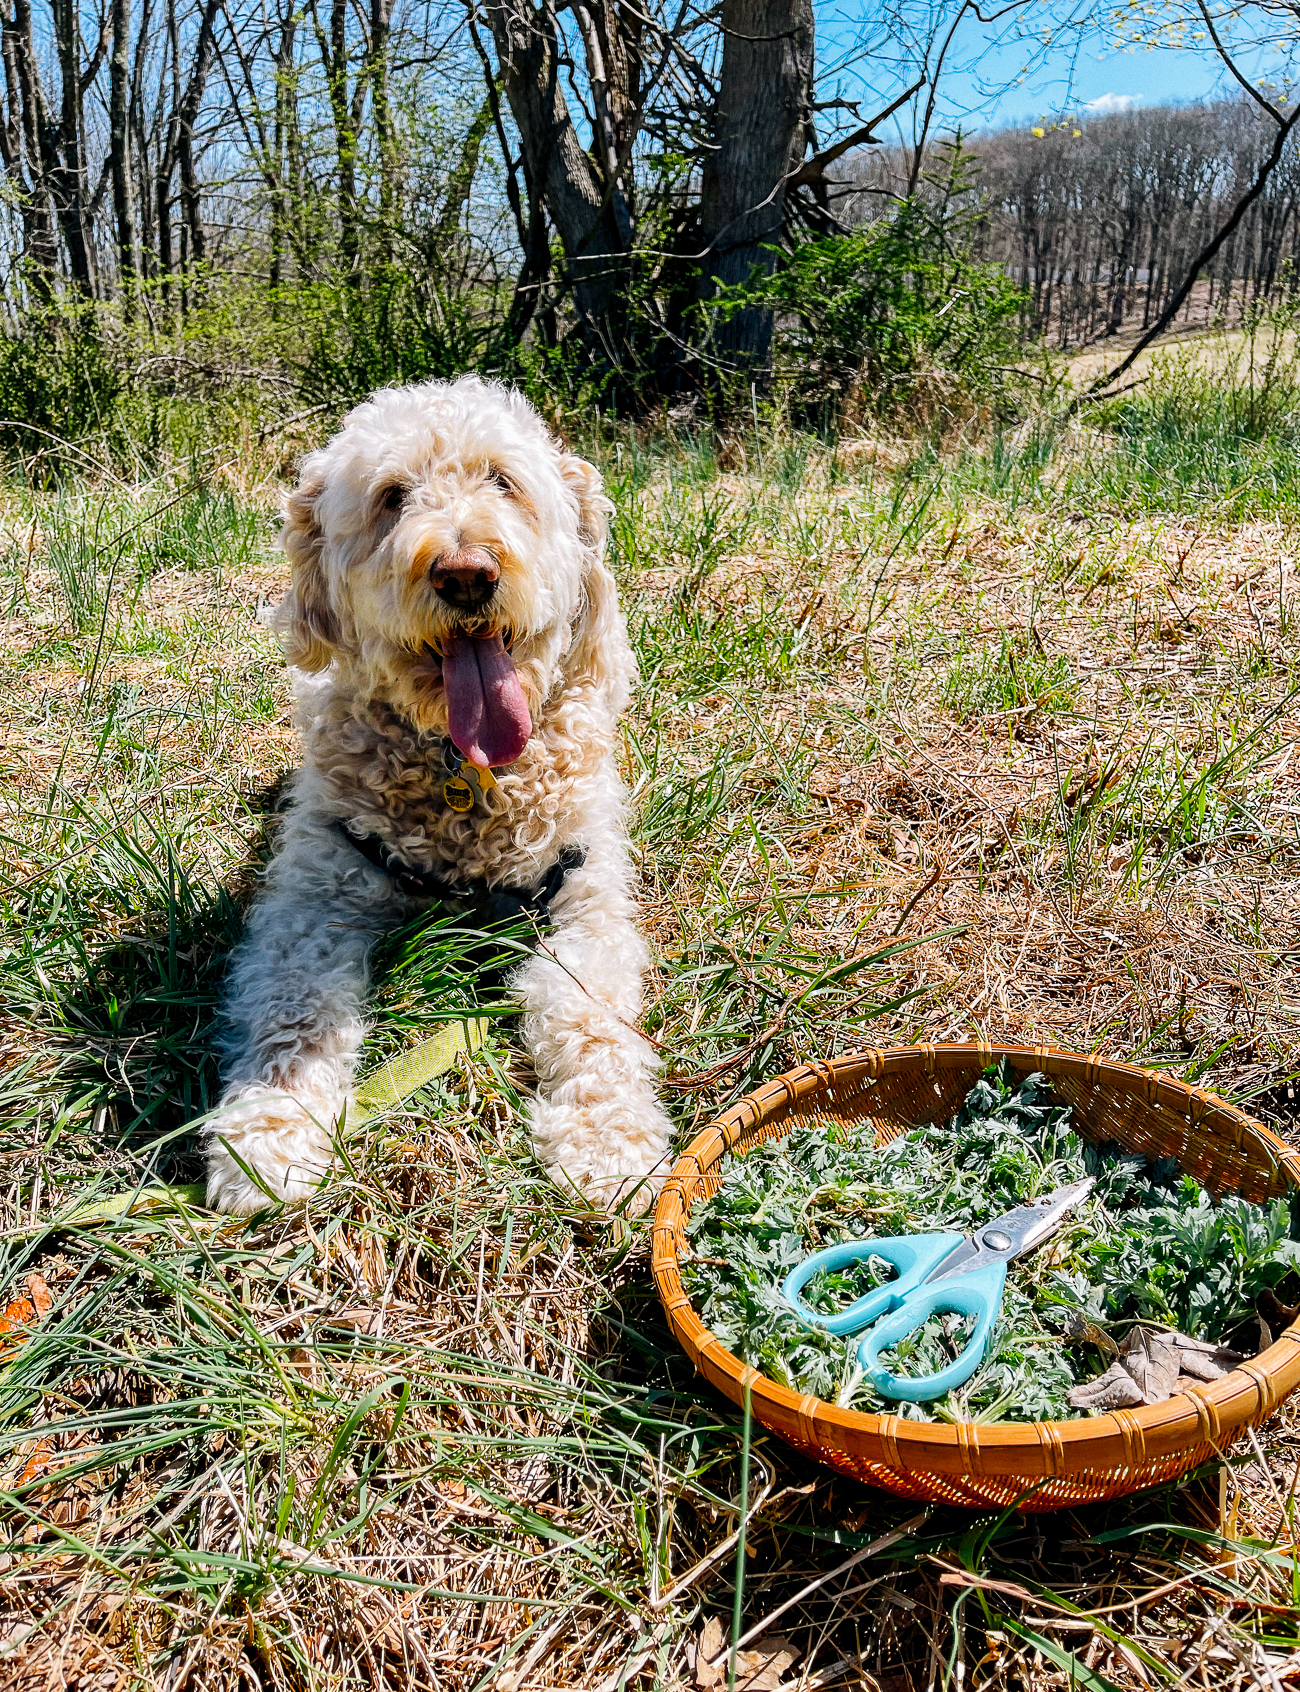 Foraging for mugwort with Barley the Goldendoodle